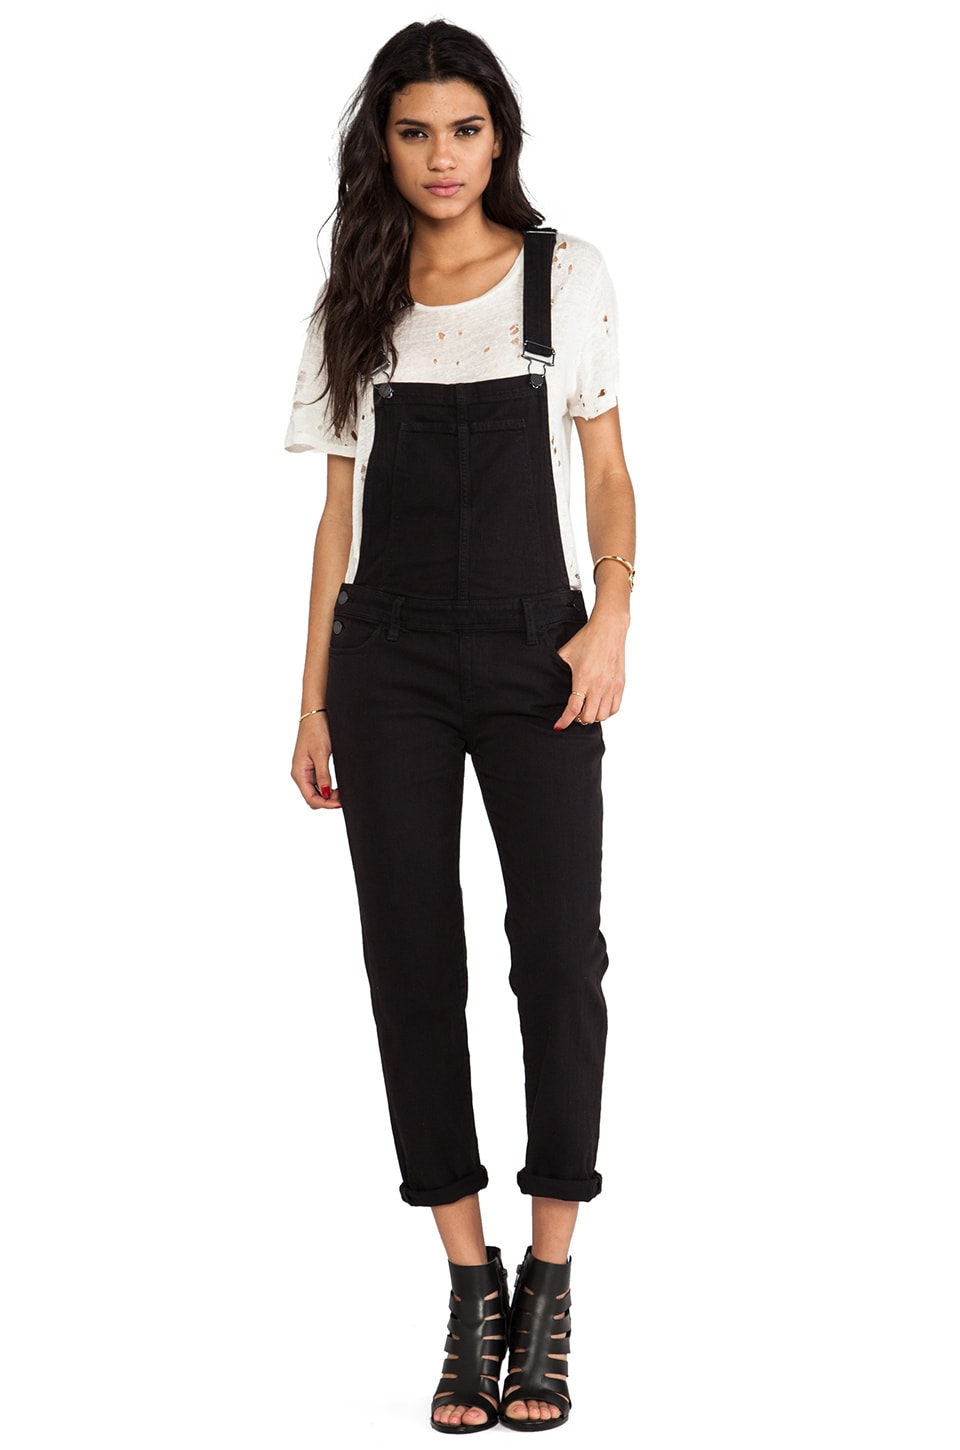 Paige Denim Sierra Overall in Vintage Black